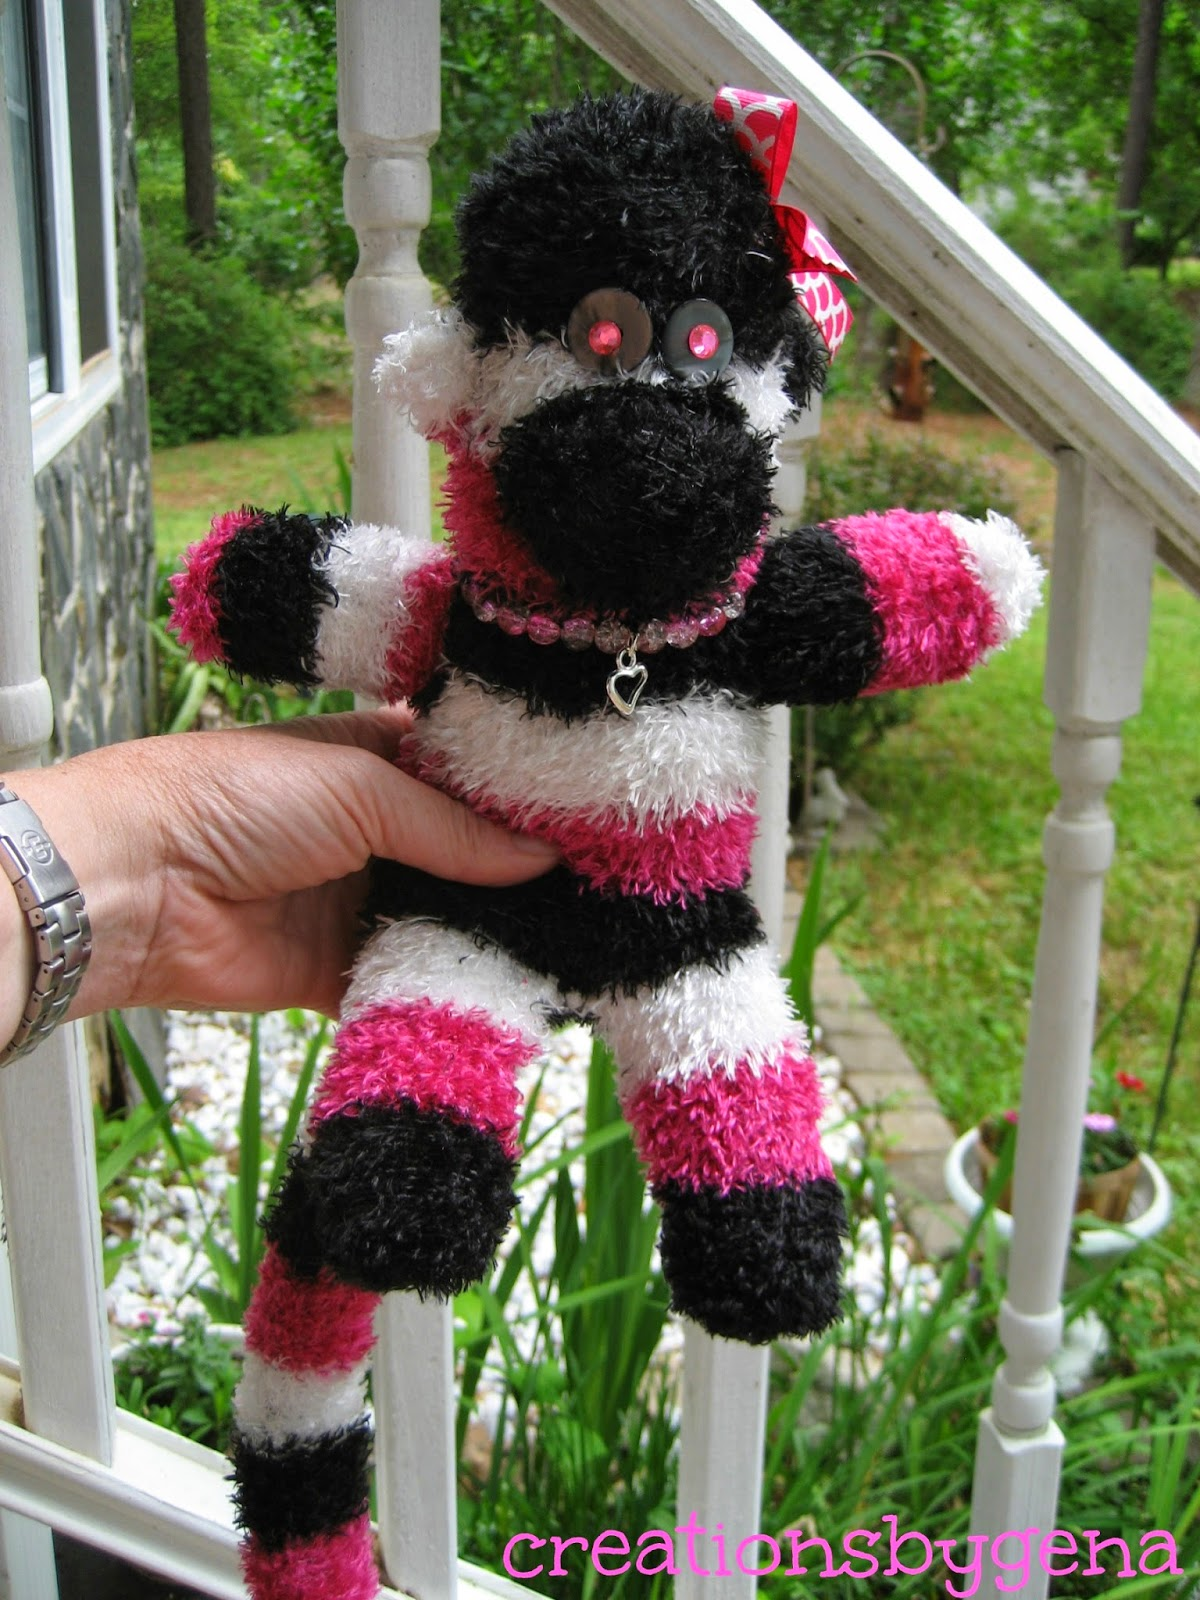 https://www.etsy.com/listing/189236163/hot-pink-black-and-white-striped-fuzzy?